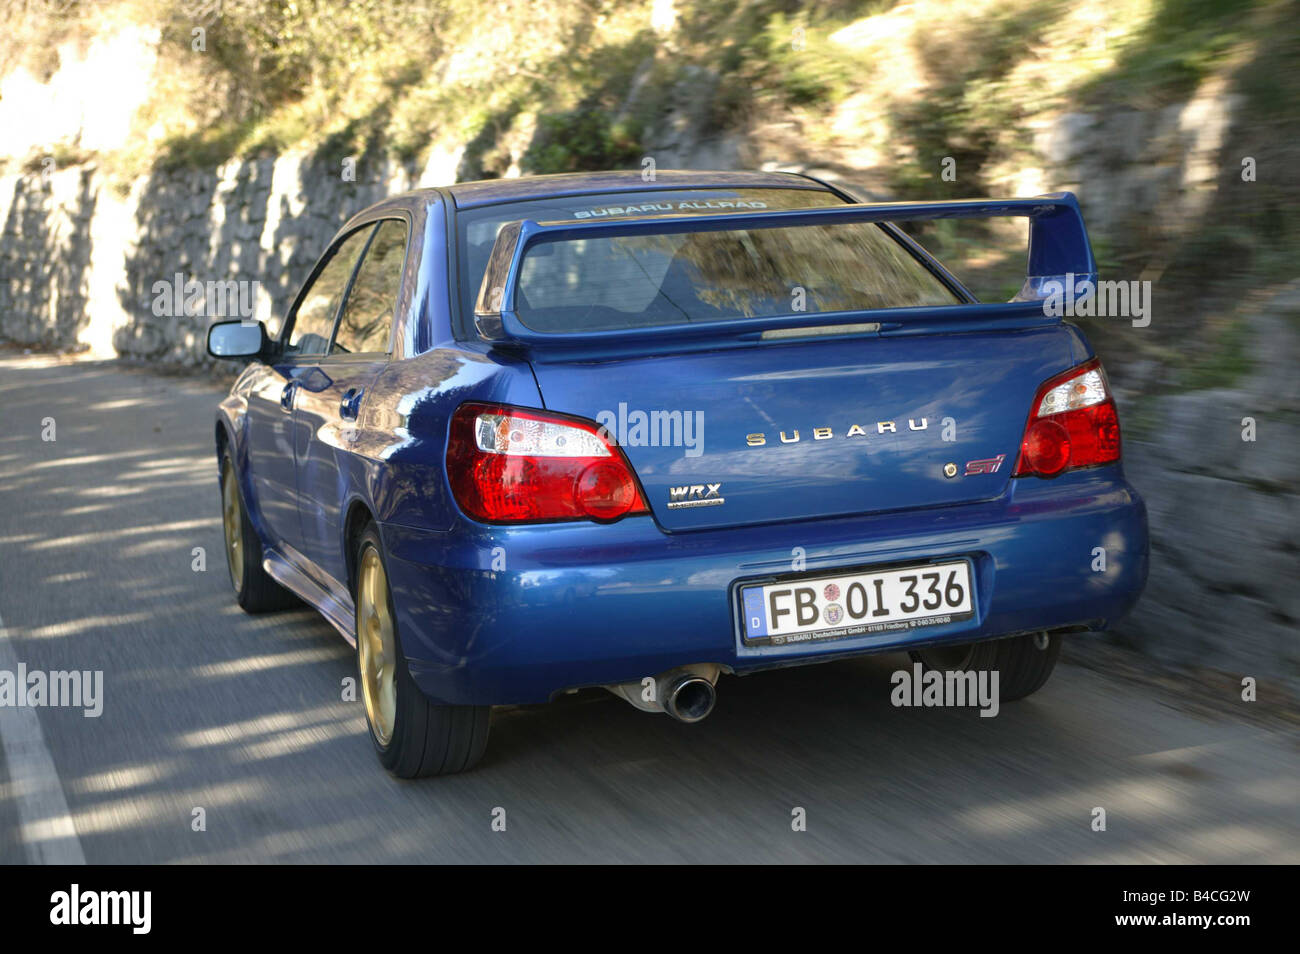 Subaru impreza wrx stock photos subaru impreza wrx stock images car subaru impreza wrx sti limousine coupe lower middle sized class vanachro Gallery